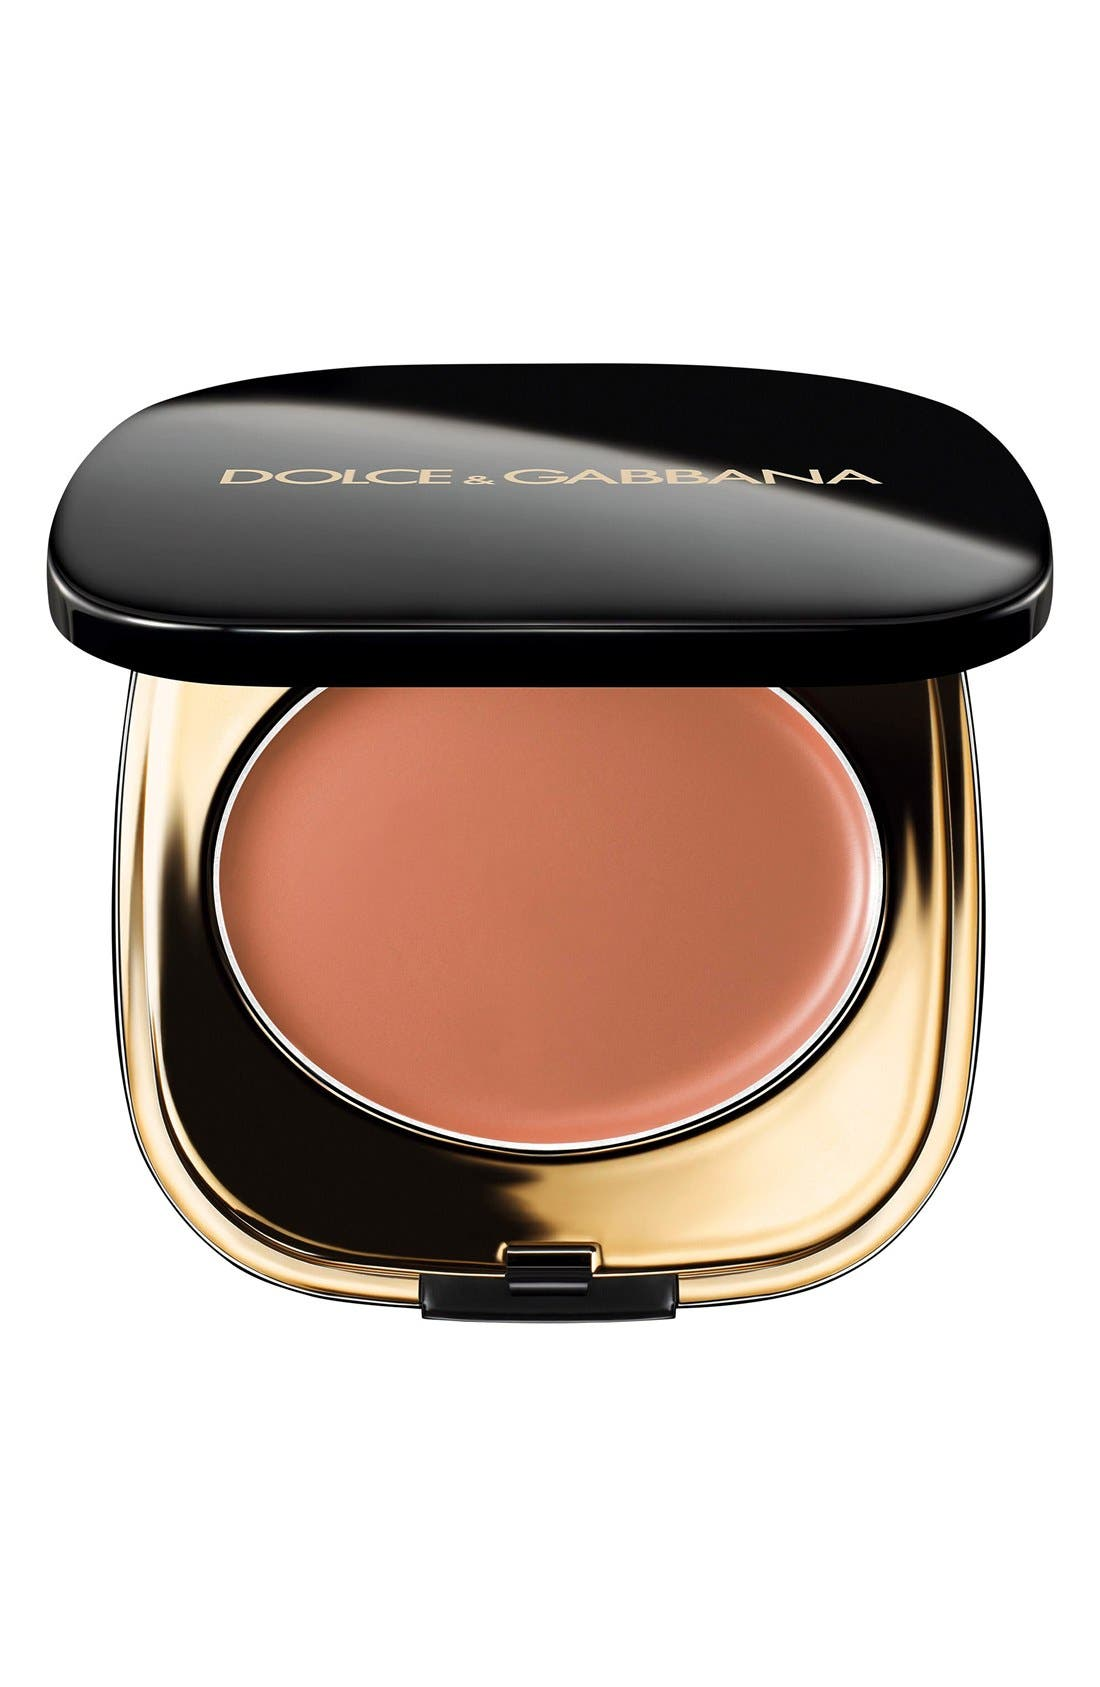 Dolce&Gabbana Beauty 'Blush of Roses - Rosa del Deserto' Creamy Face Colour